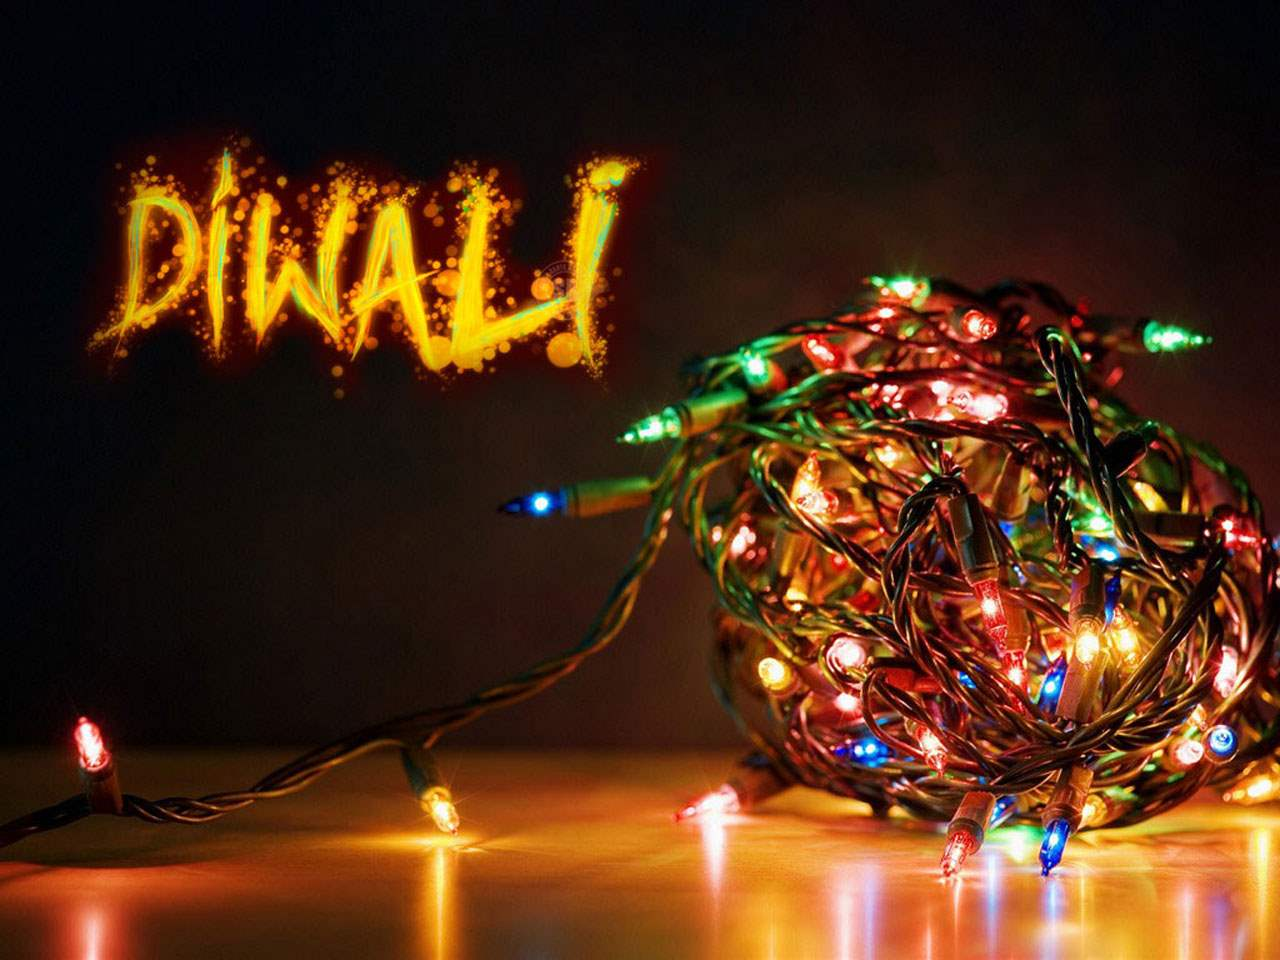 Happy Diwali Wallpapers And Backgrounds: Full HD Diwali Wallpapers And Greeting Cards